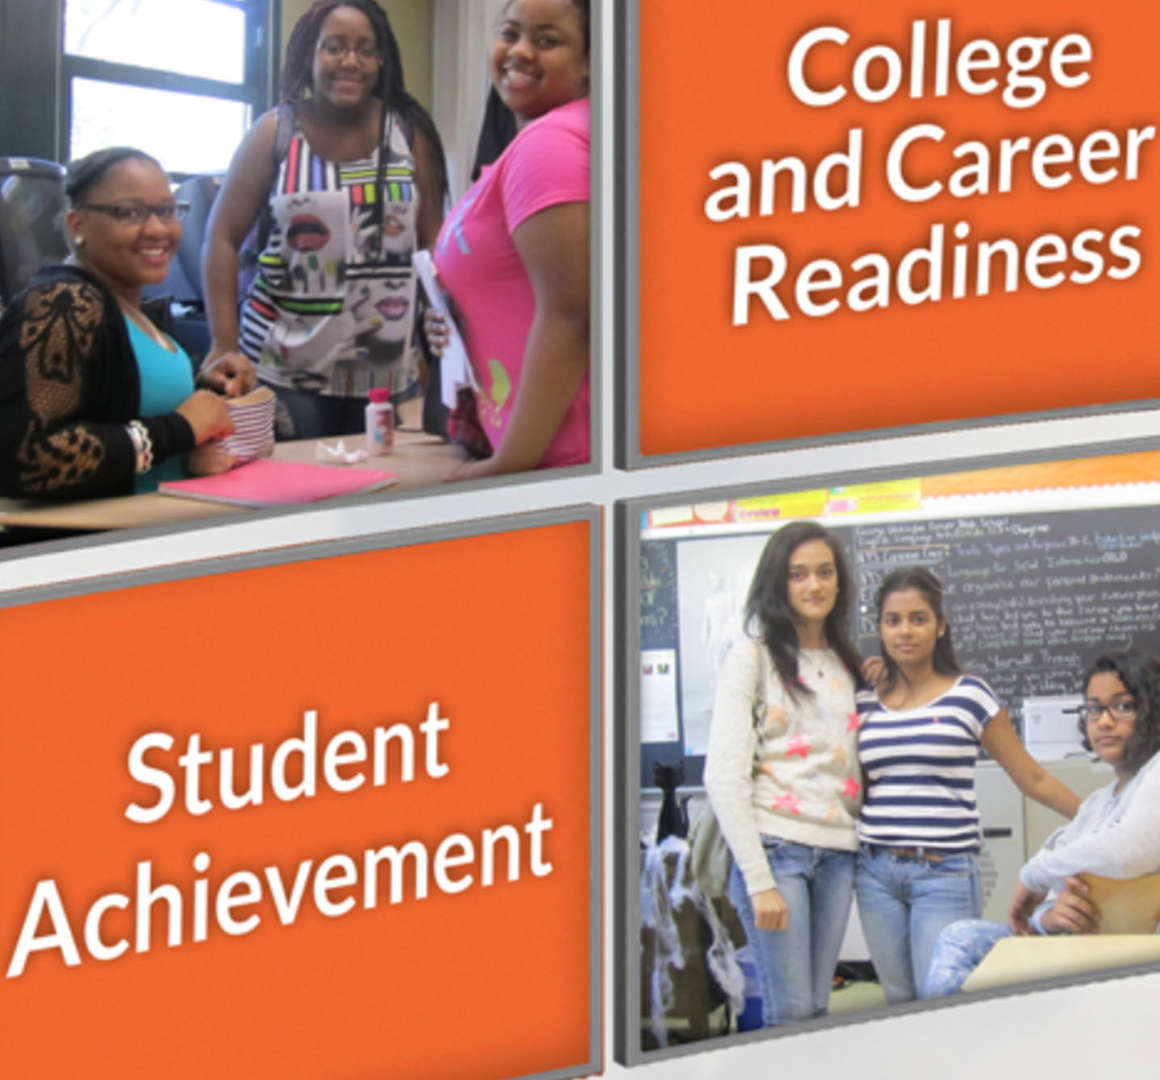 Student Achievement and Career Readiness: students standing in the classroom